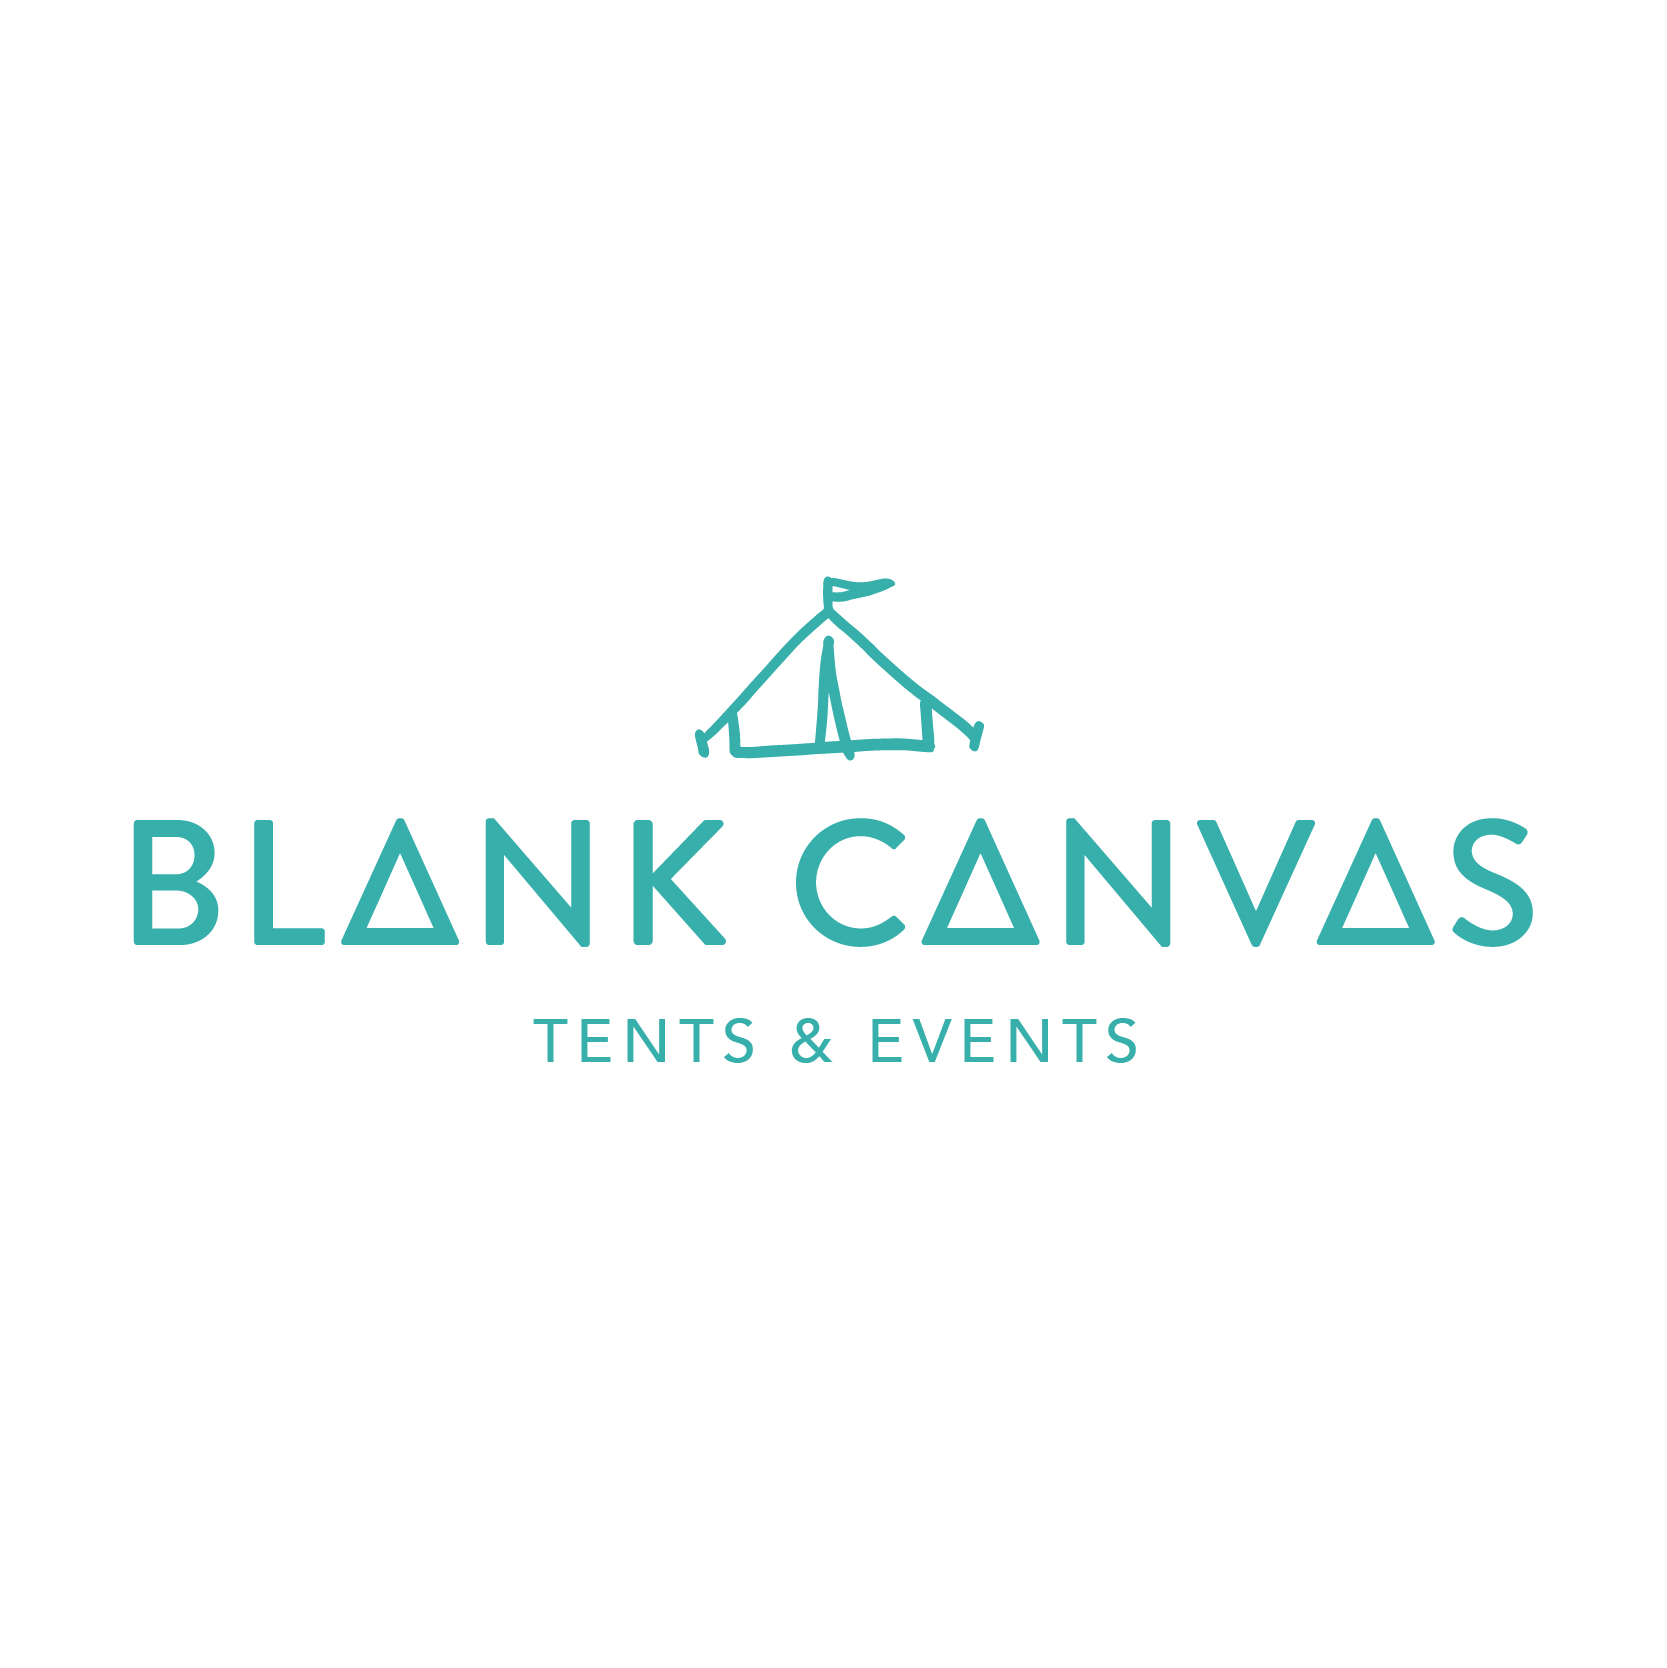 Blank Canvas Tents & Events